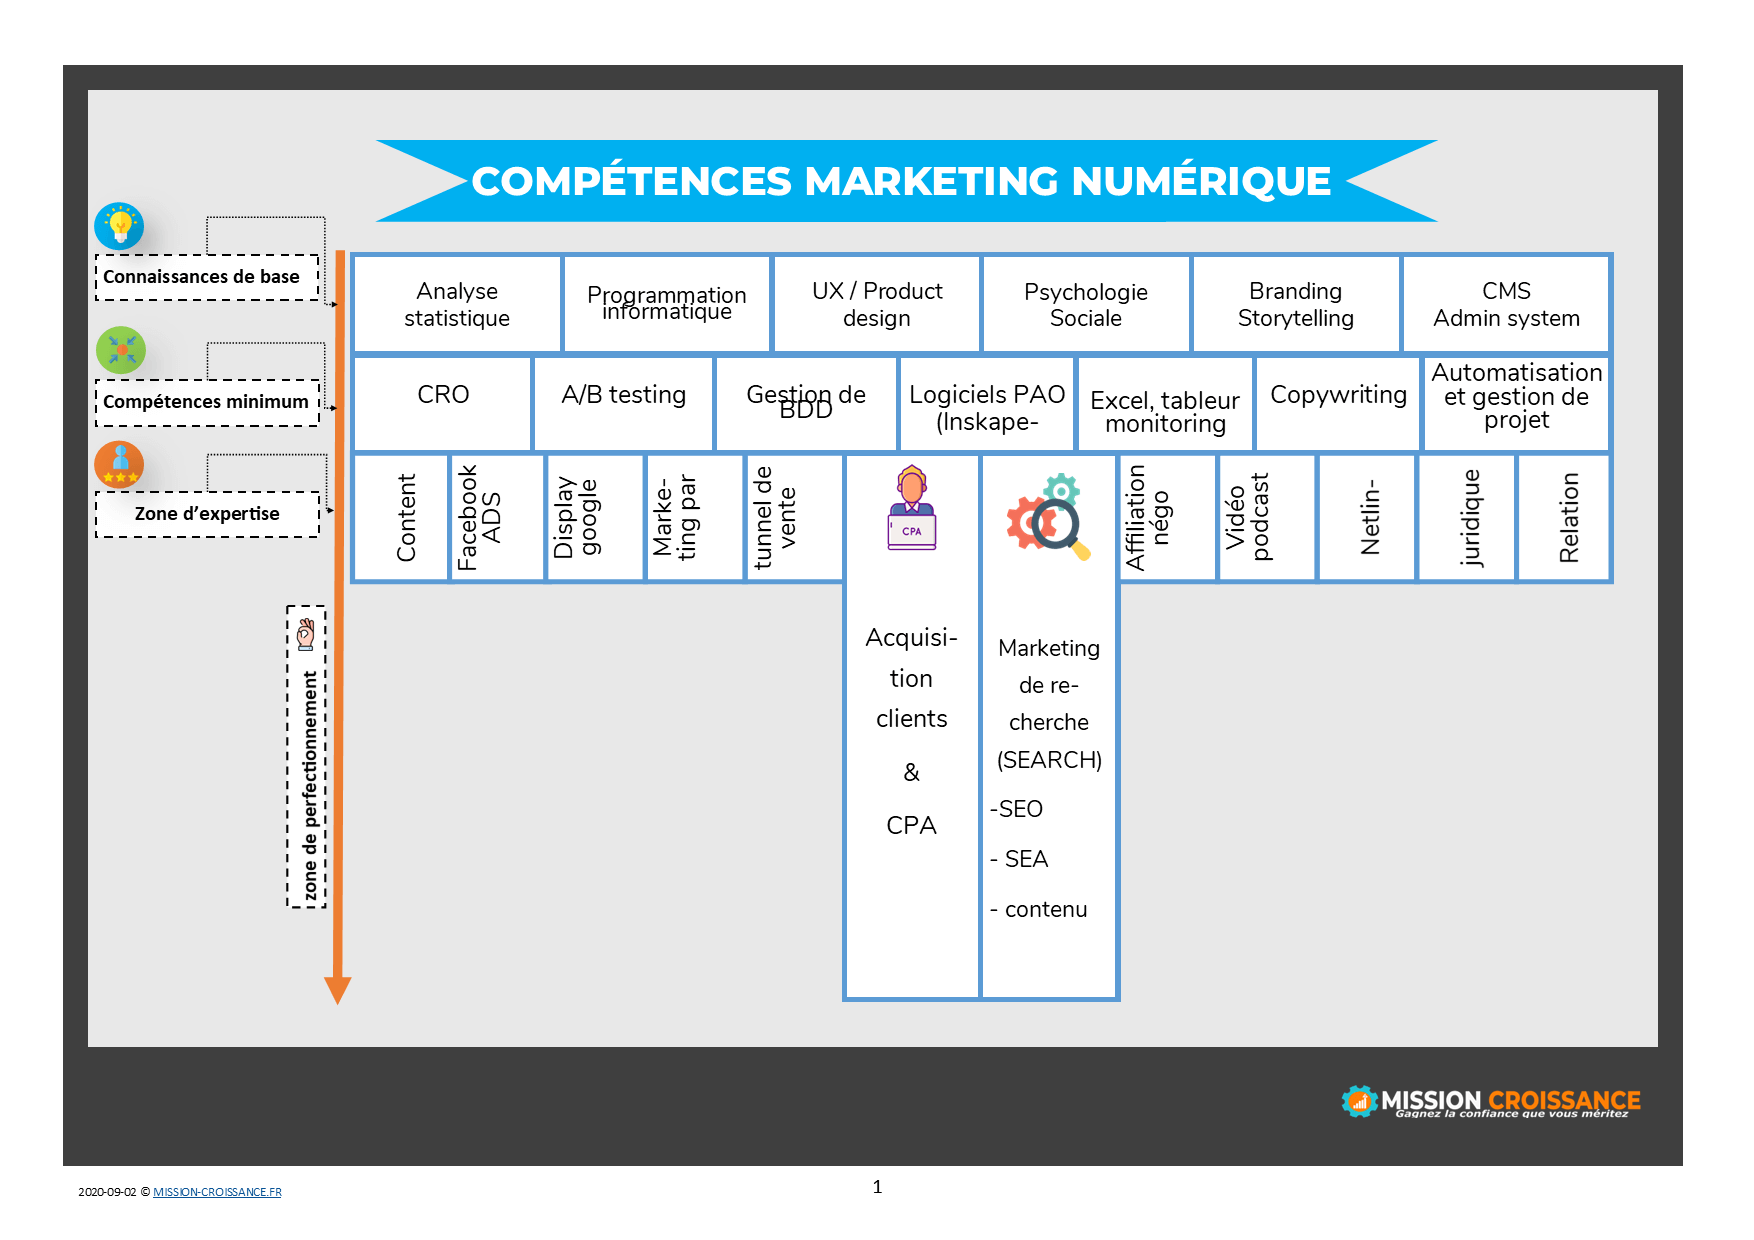 tableau competences marketing numerique forme t